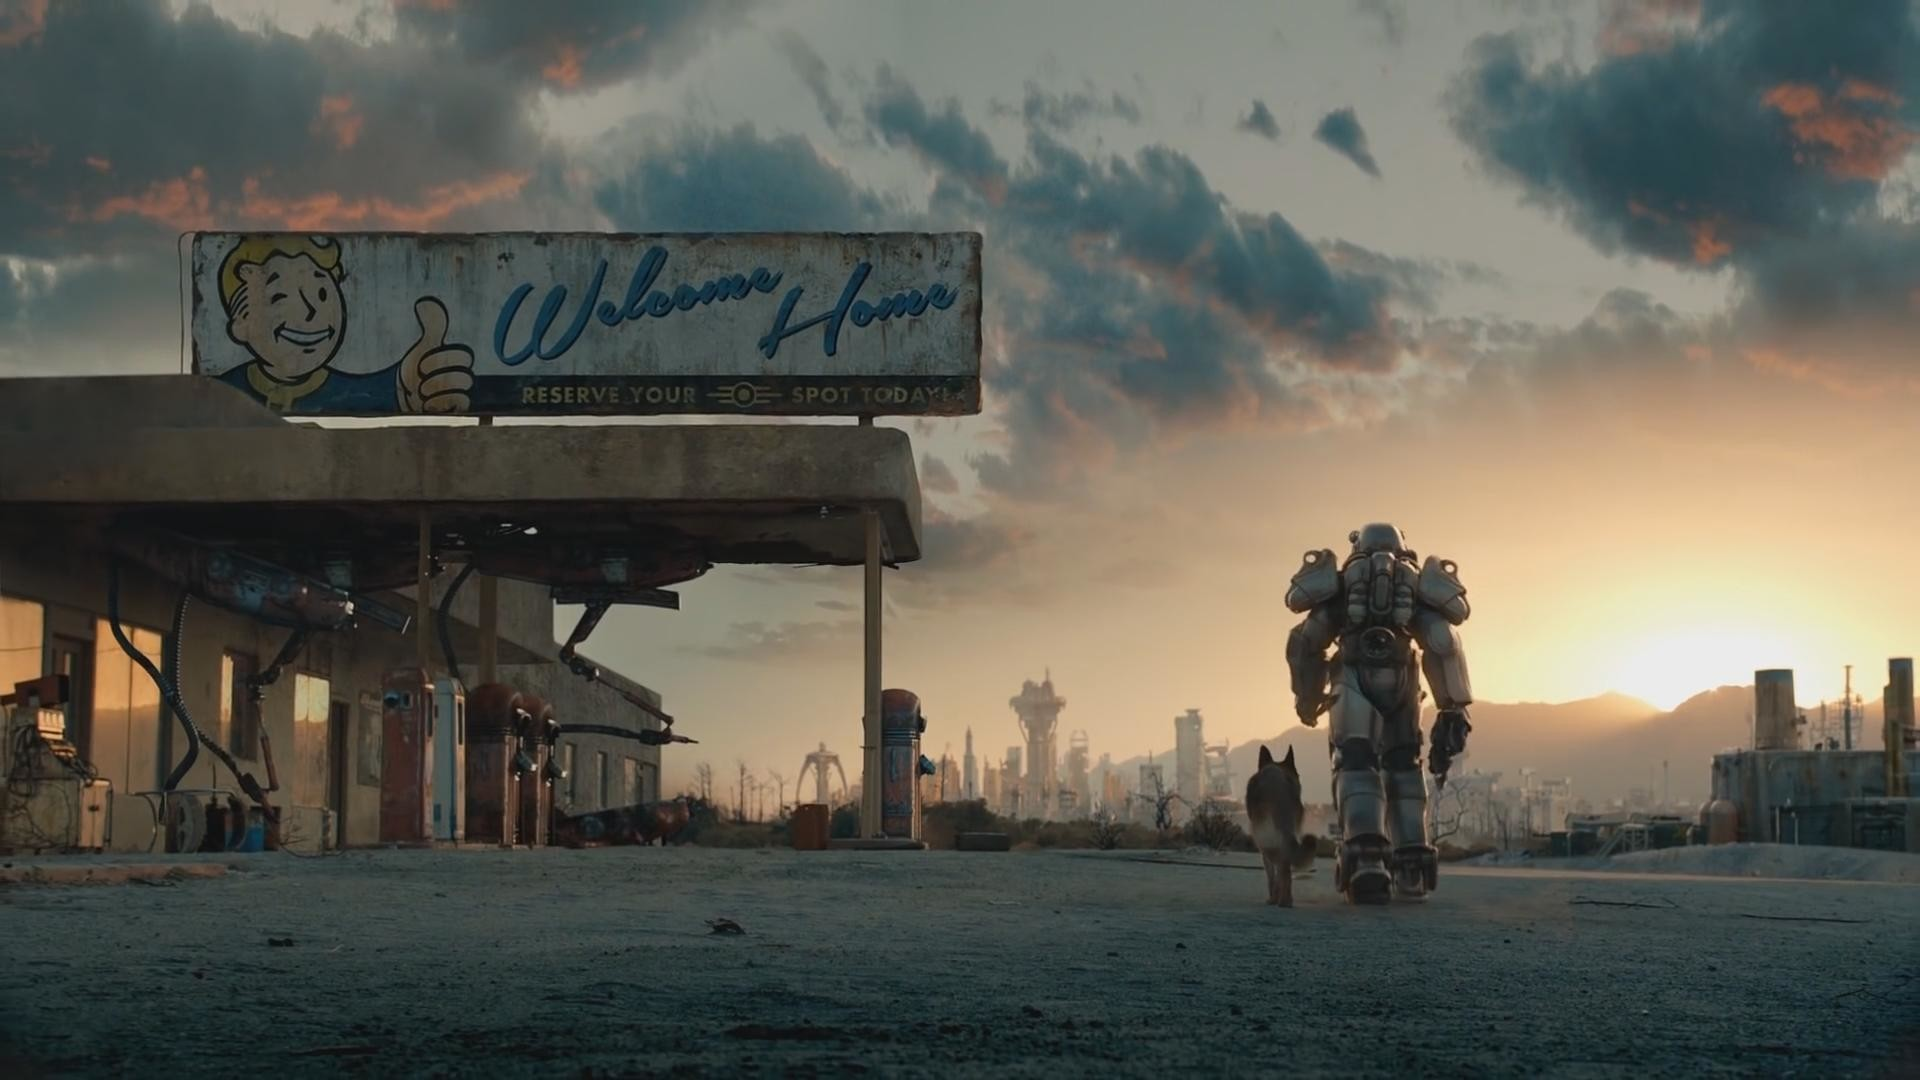 MediaA Fallout 4 Wallpaper for those that are interested.